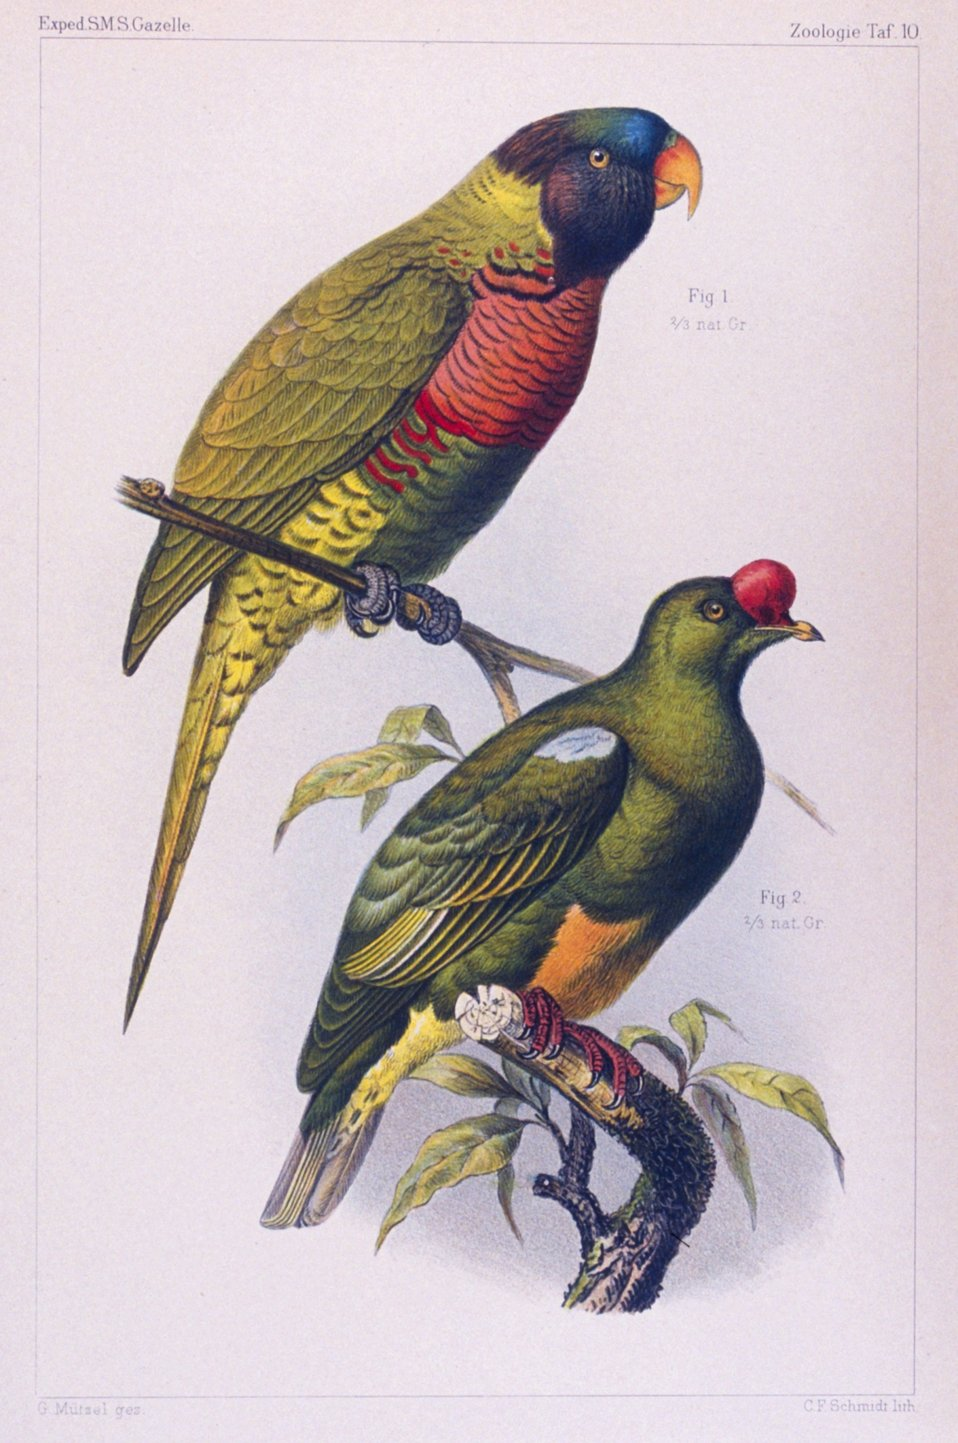 Water color of parrots seen during the voyage of the GAZELLE.